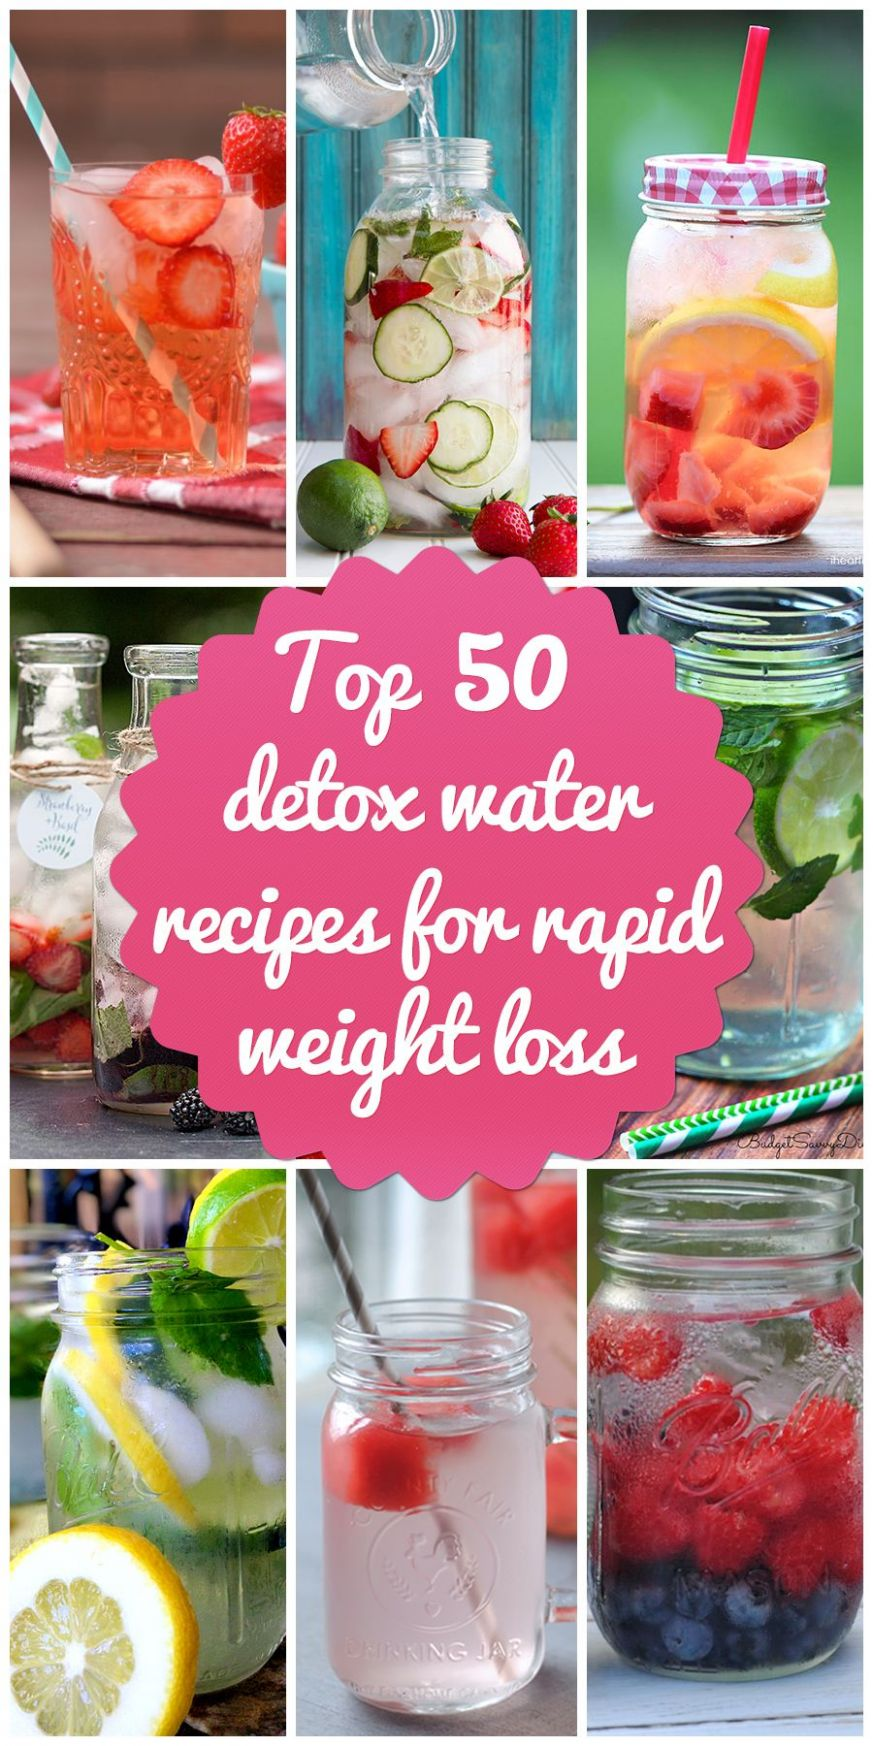 Pin on Recipes - Recipes For Detox Weight Loss Water